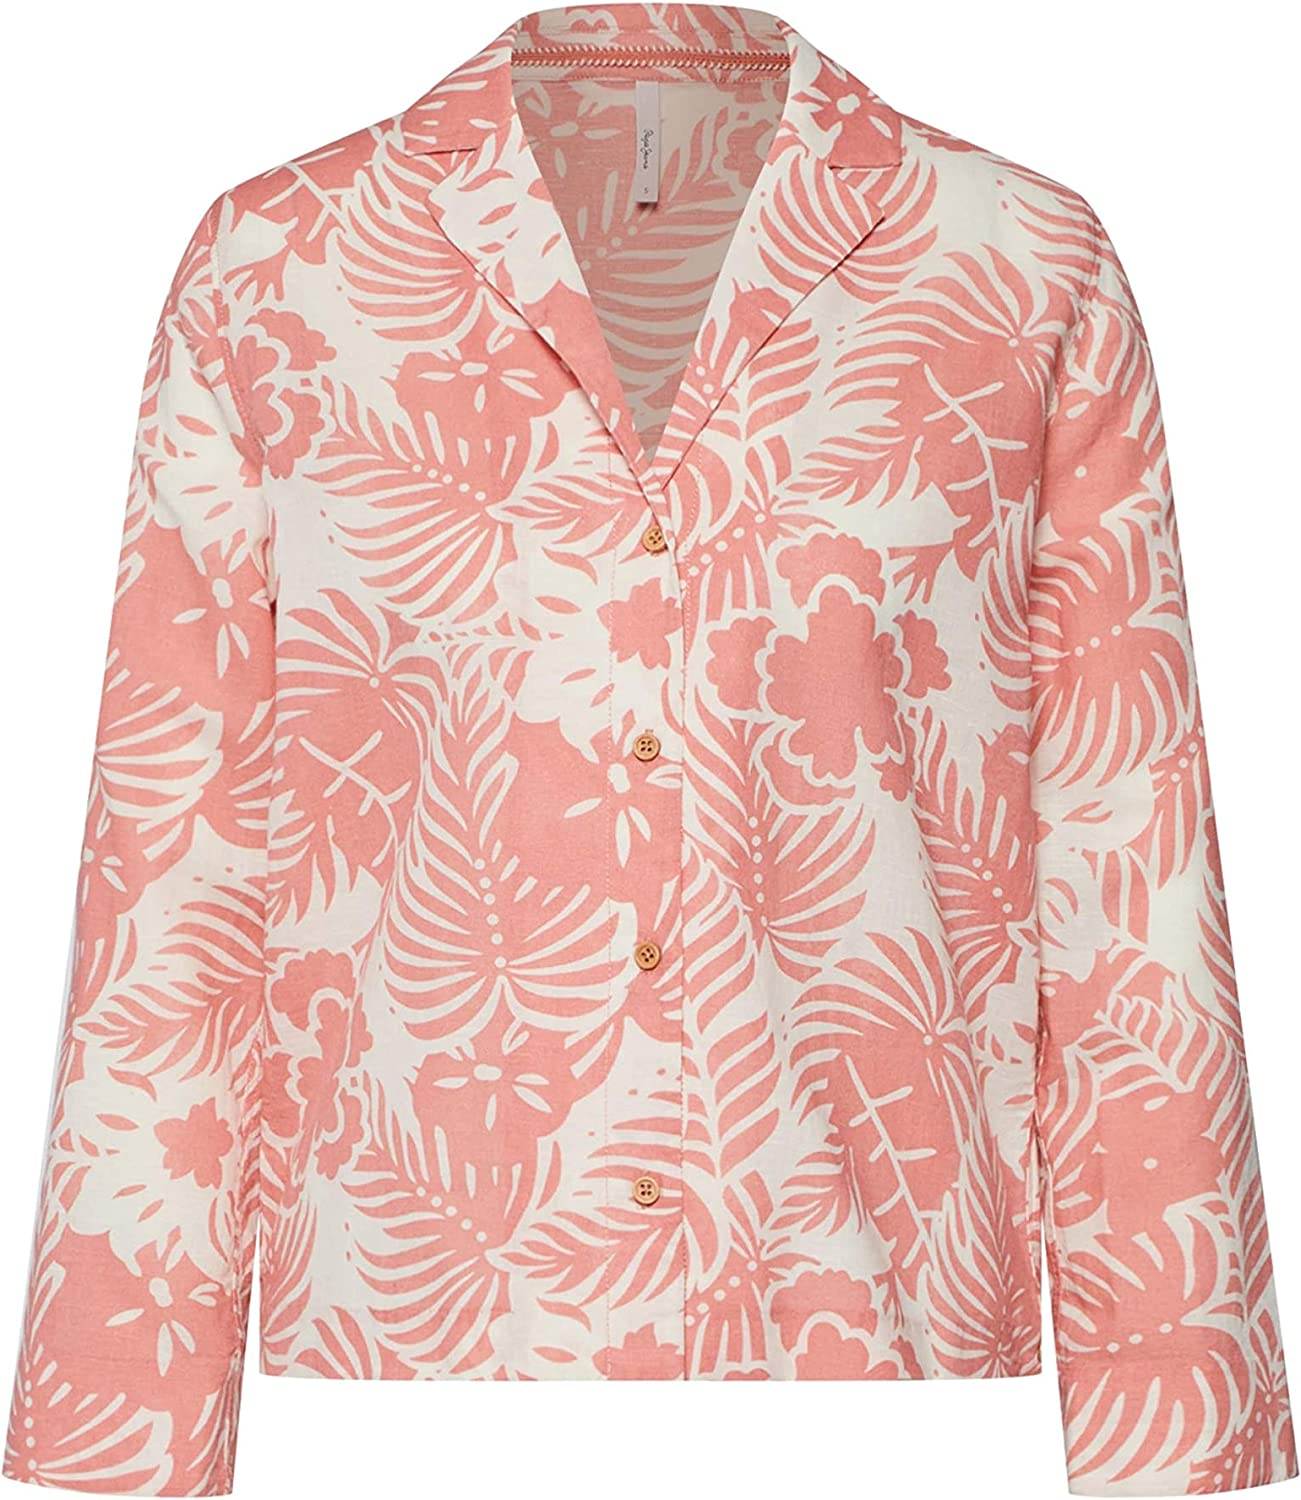 Pepe Jeans Camisa Jane Tropical Mujer: Amazon.es: Ropa y accesorios